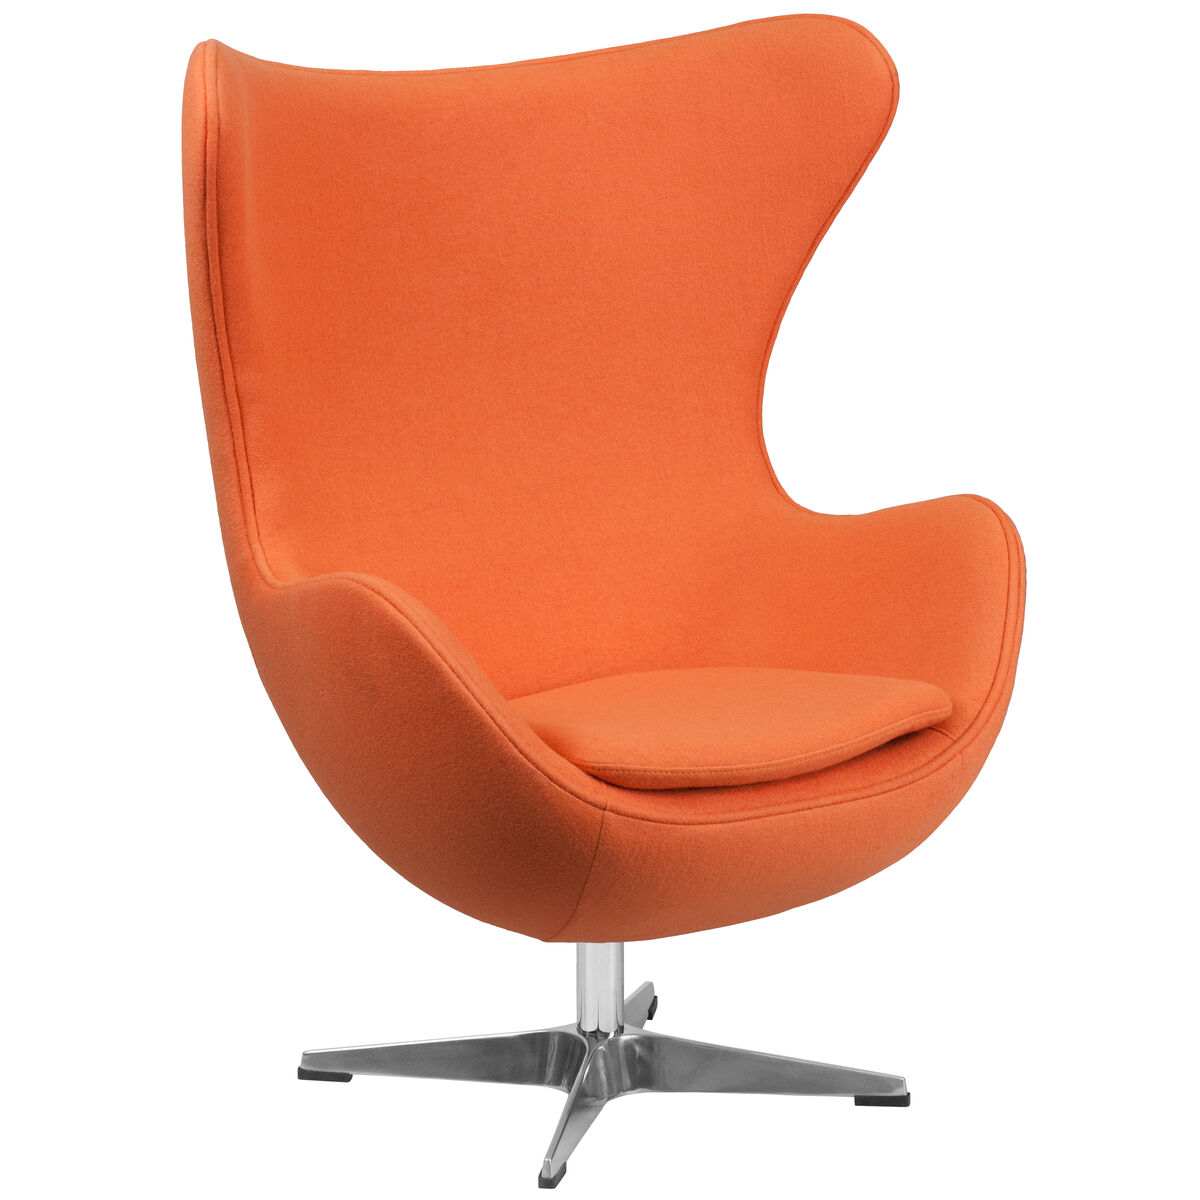 Our Orange Wool Fabric Egg Chair With Tilt Lock Mechanism Is On Now